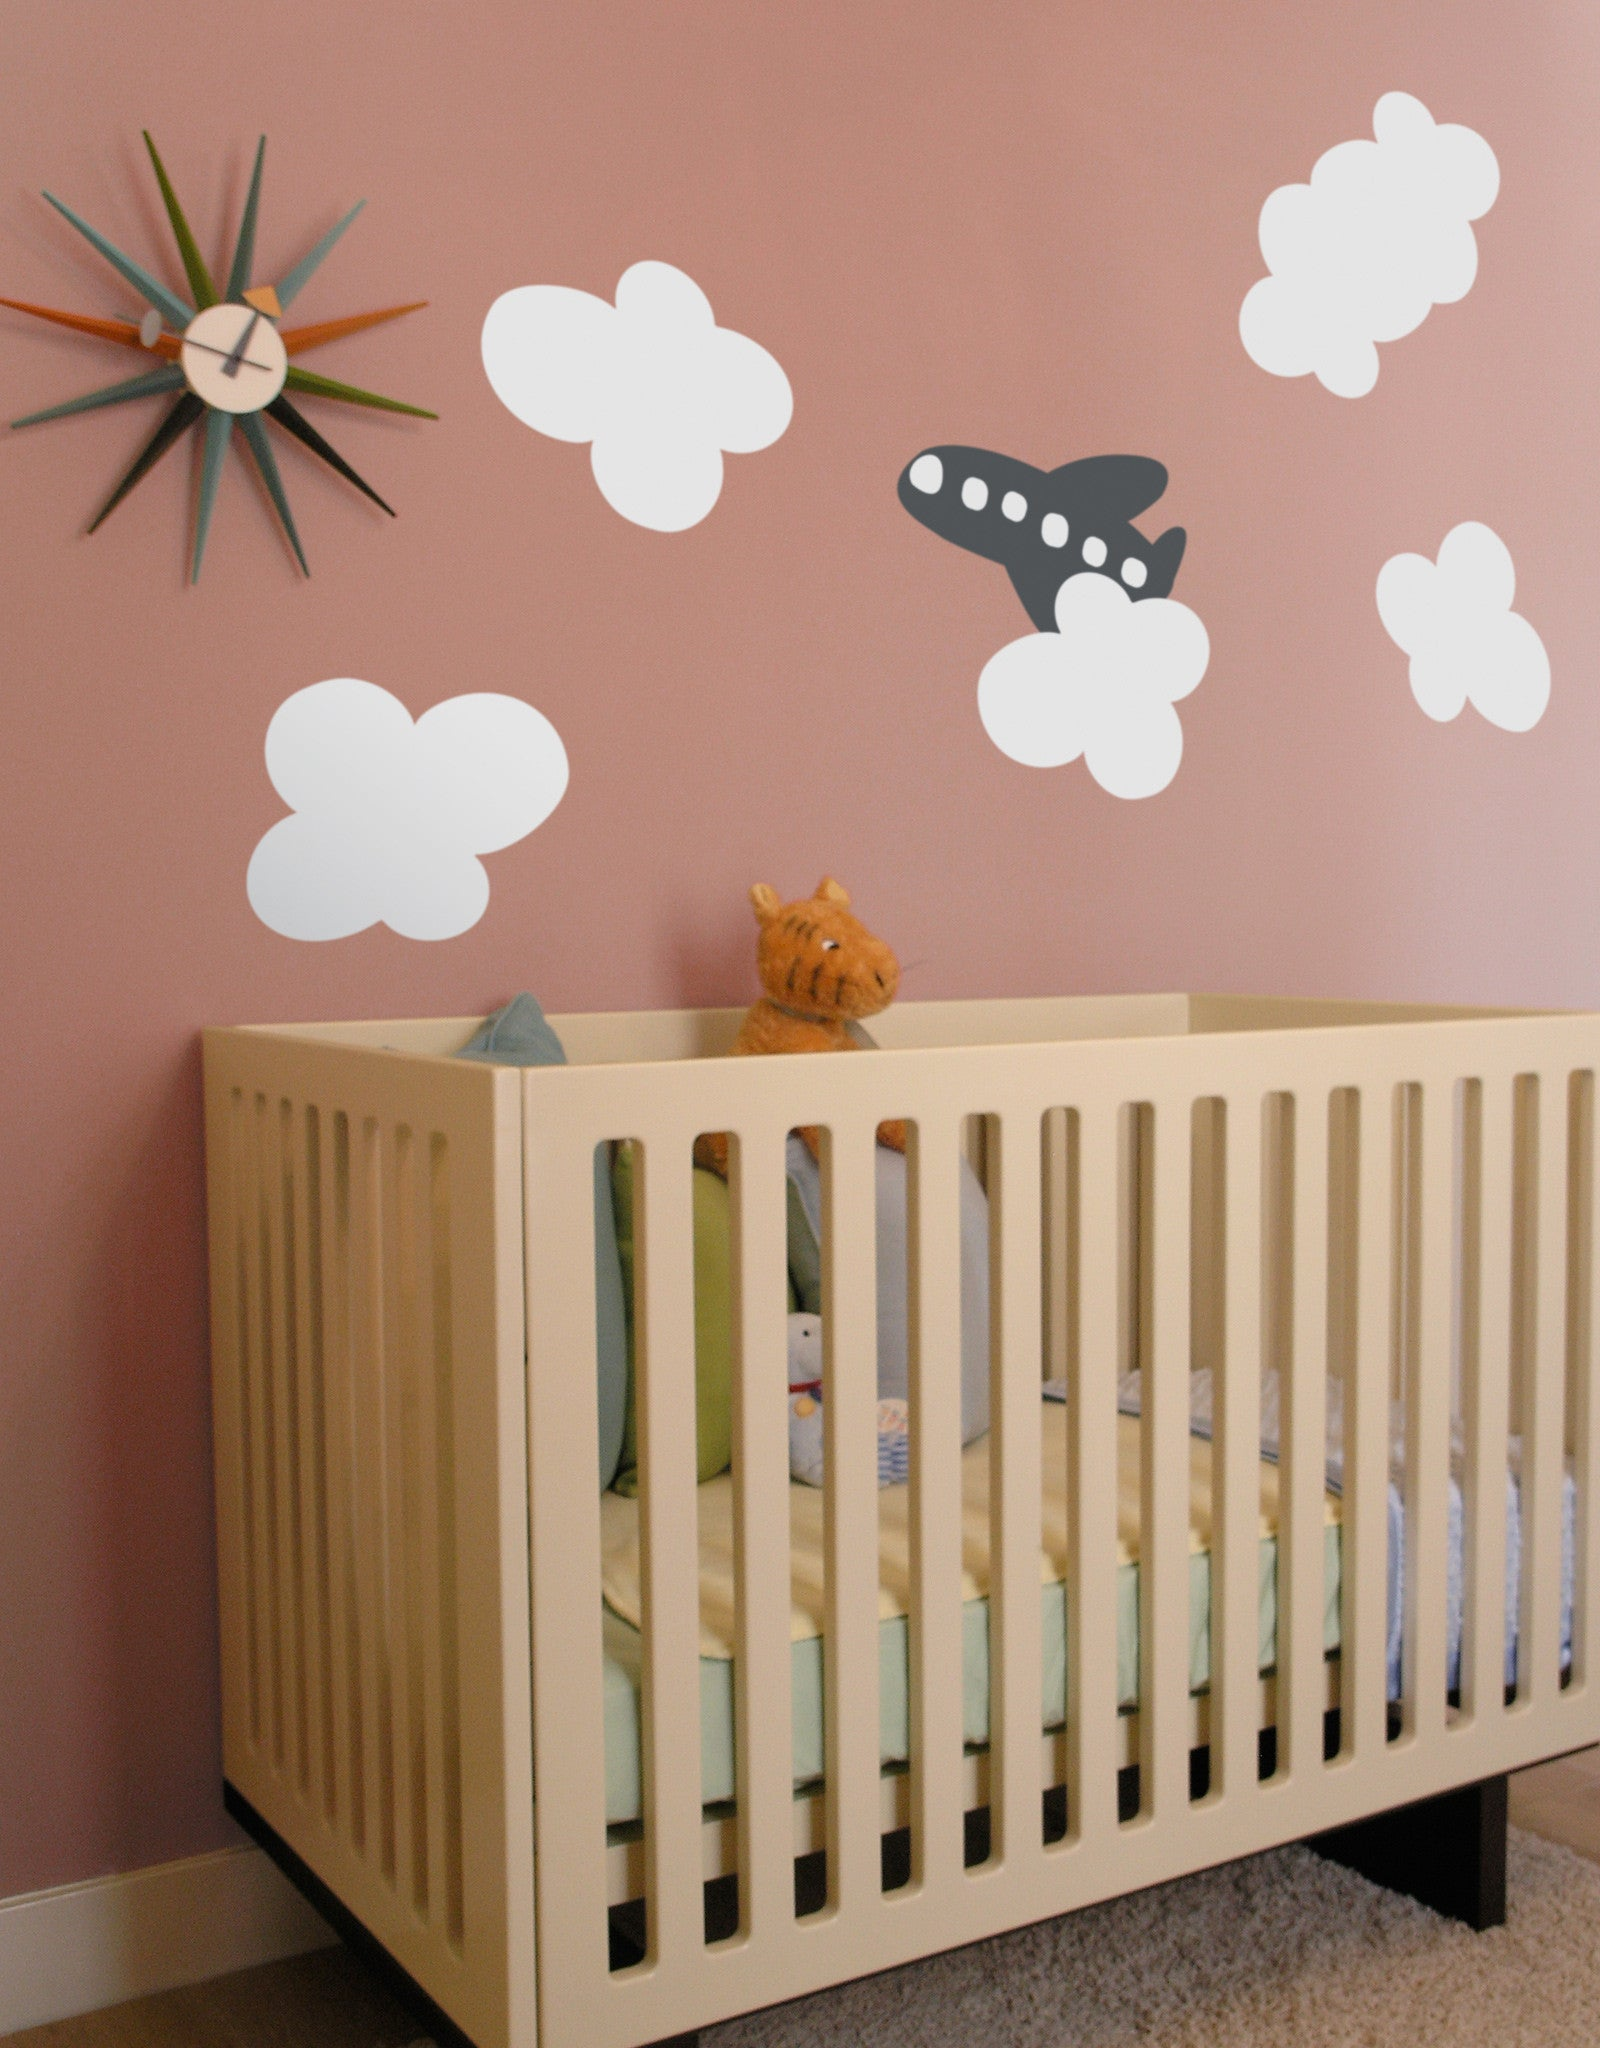 Cloud ~ Re-Stik & Cloud u0026 Airplane Wall Decal | Airplane Wall Decor | Blik